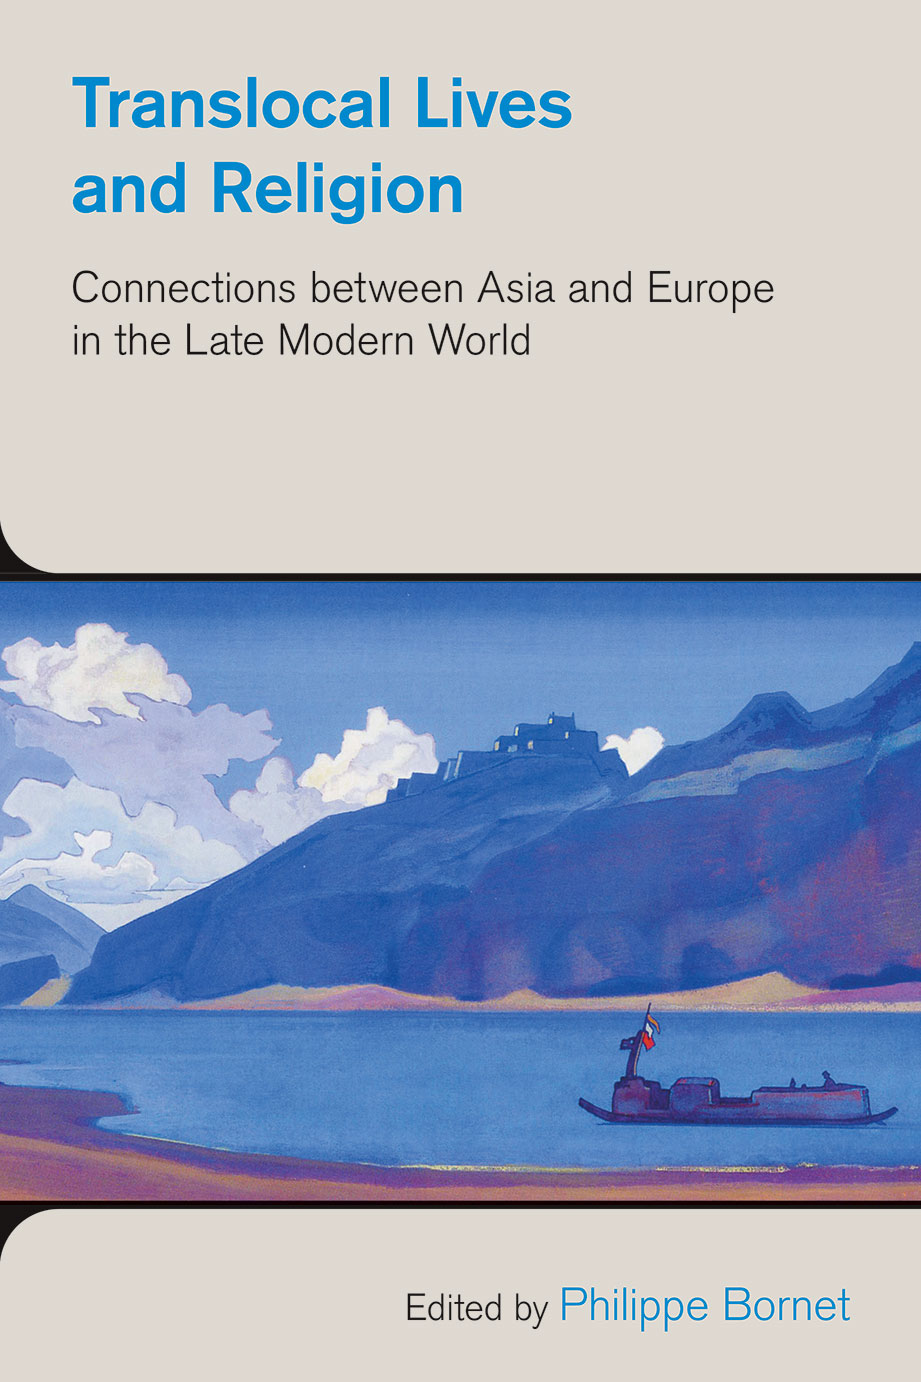 Translocal Lives and Religion - Connections between Asia and Europe in the Late Modern World - Philippe Bornet